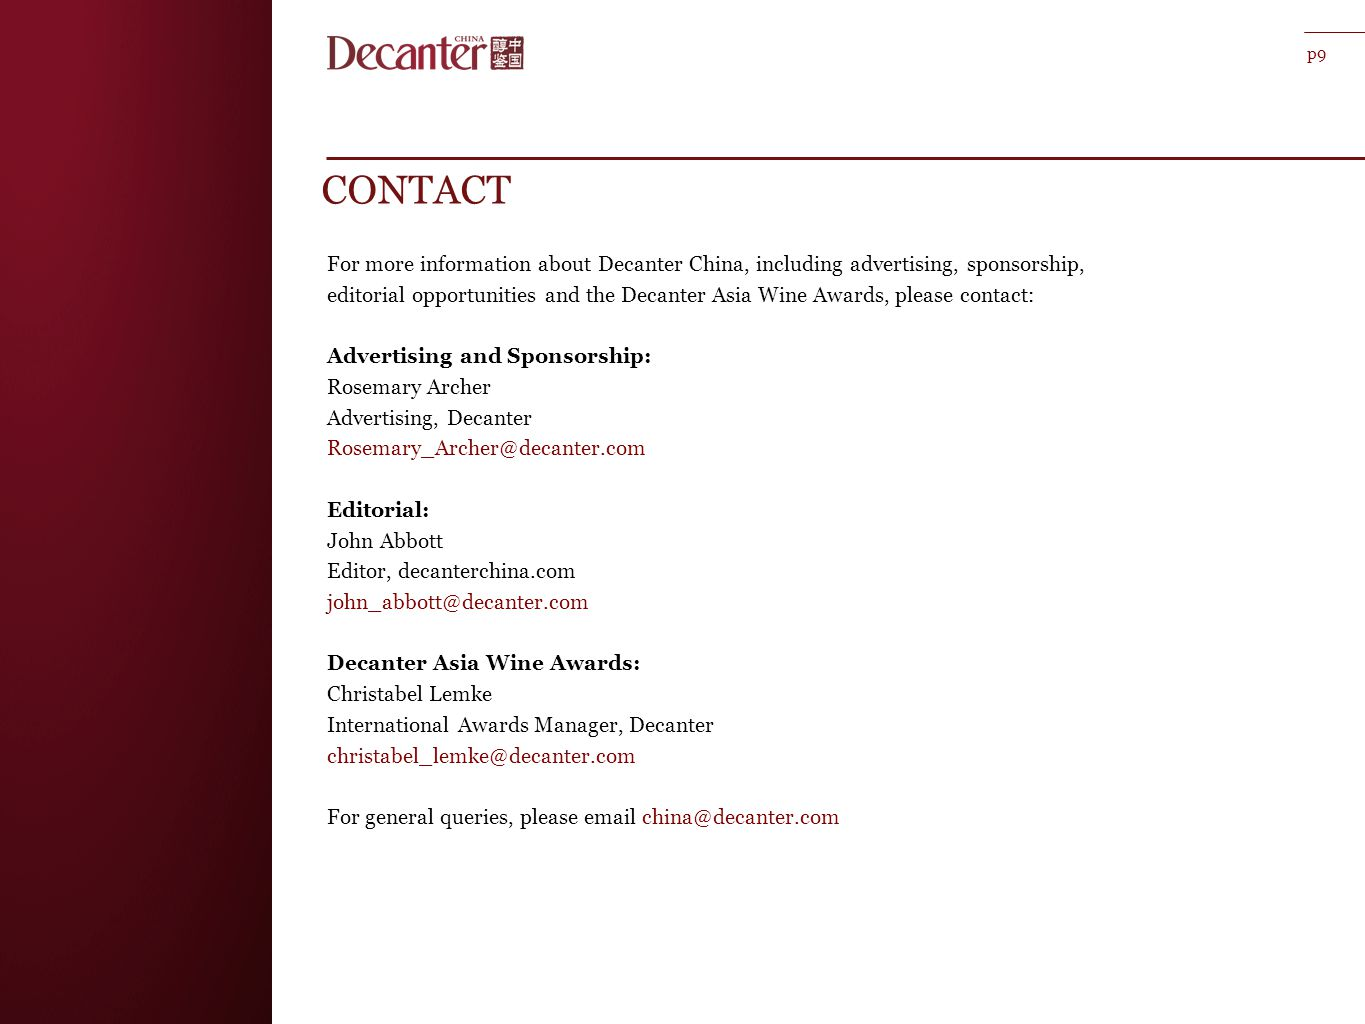 CONTACT For more information about Decanter China, including advertising, sponsorship, editorial opportunities and the Decanter Asia Wine Awards, please contact: Advertising and Sponsorship: Rosemary Archer Advertising, Decanter Rosemary_Archer@decanter.com Editorial: John Abbott Editor, decanterchina.com john_abbott@decanter.com Decanter Asia Wine Awards: Christabel Lemke International Awards Manager, Decanter christabel_lemke@decanter.com For general queries, please email china@decanter.com p9